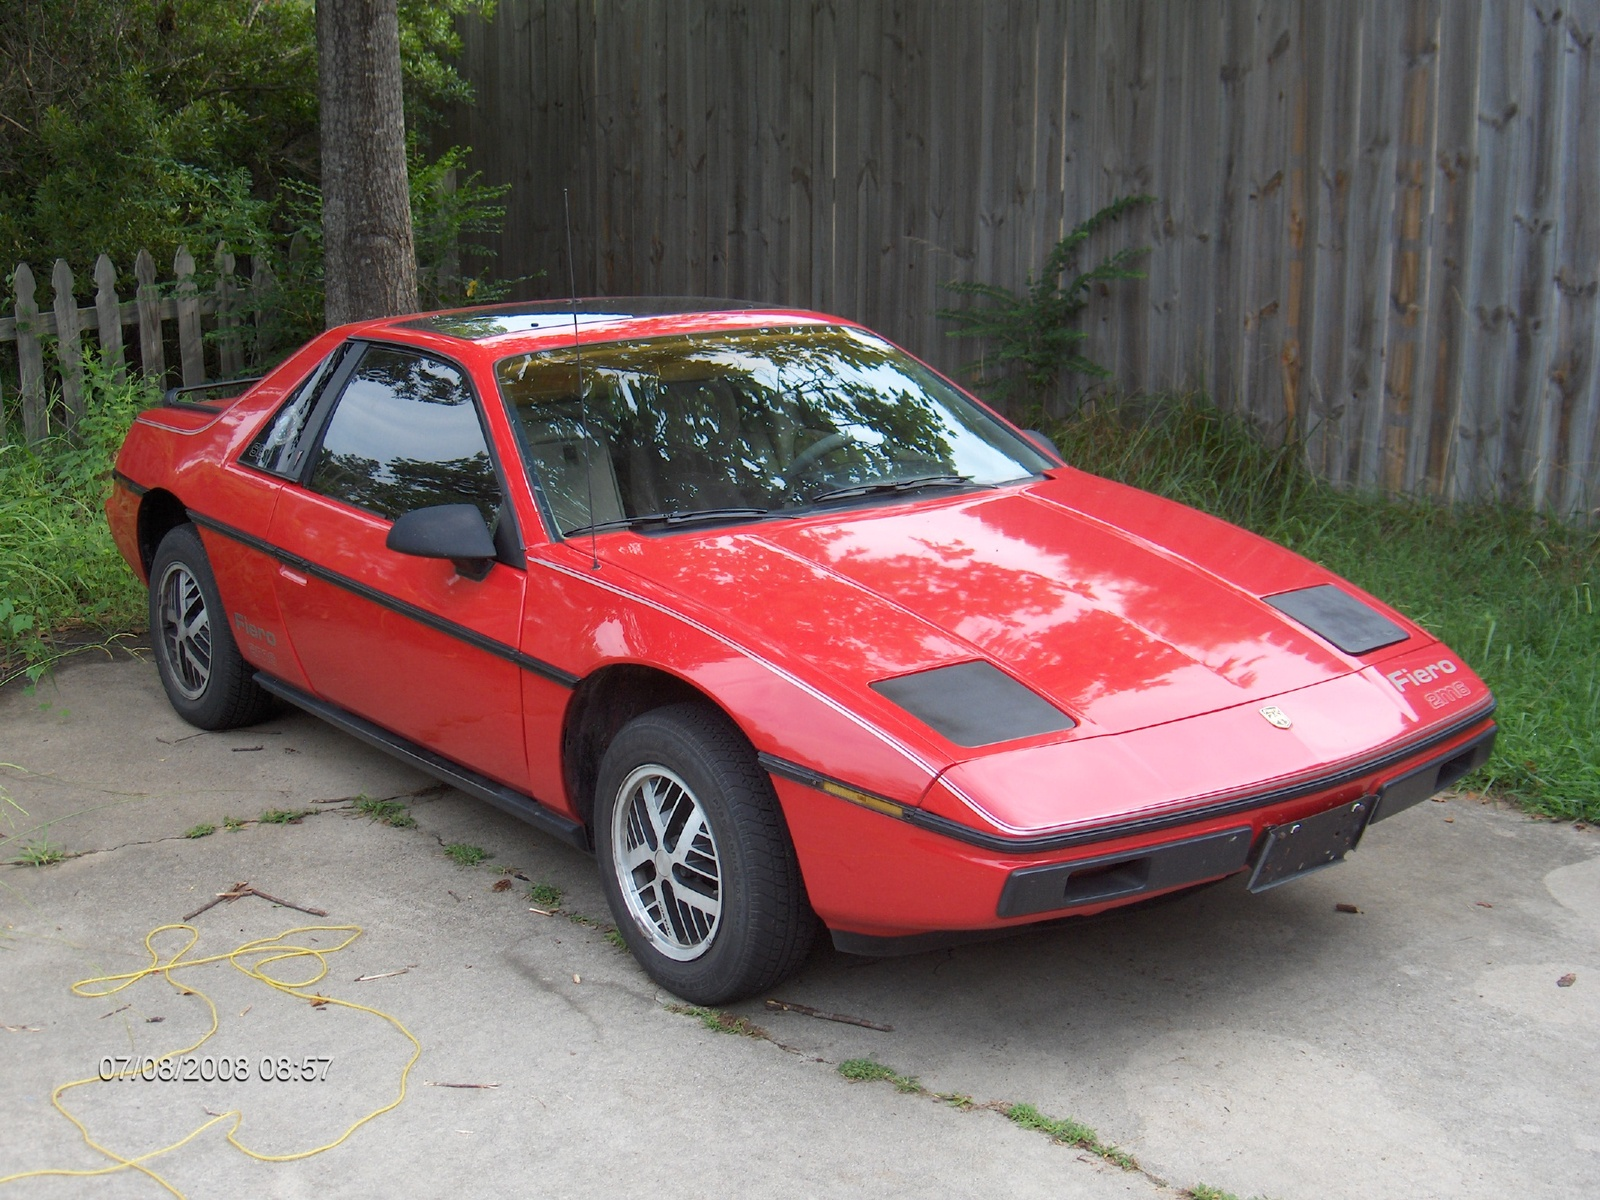 1985 pontiac fiero exterior pictures cargurus. Black Bedroom Furniture Sets. Home Design Ideas